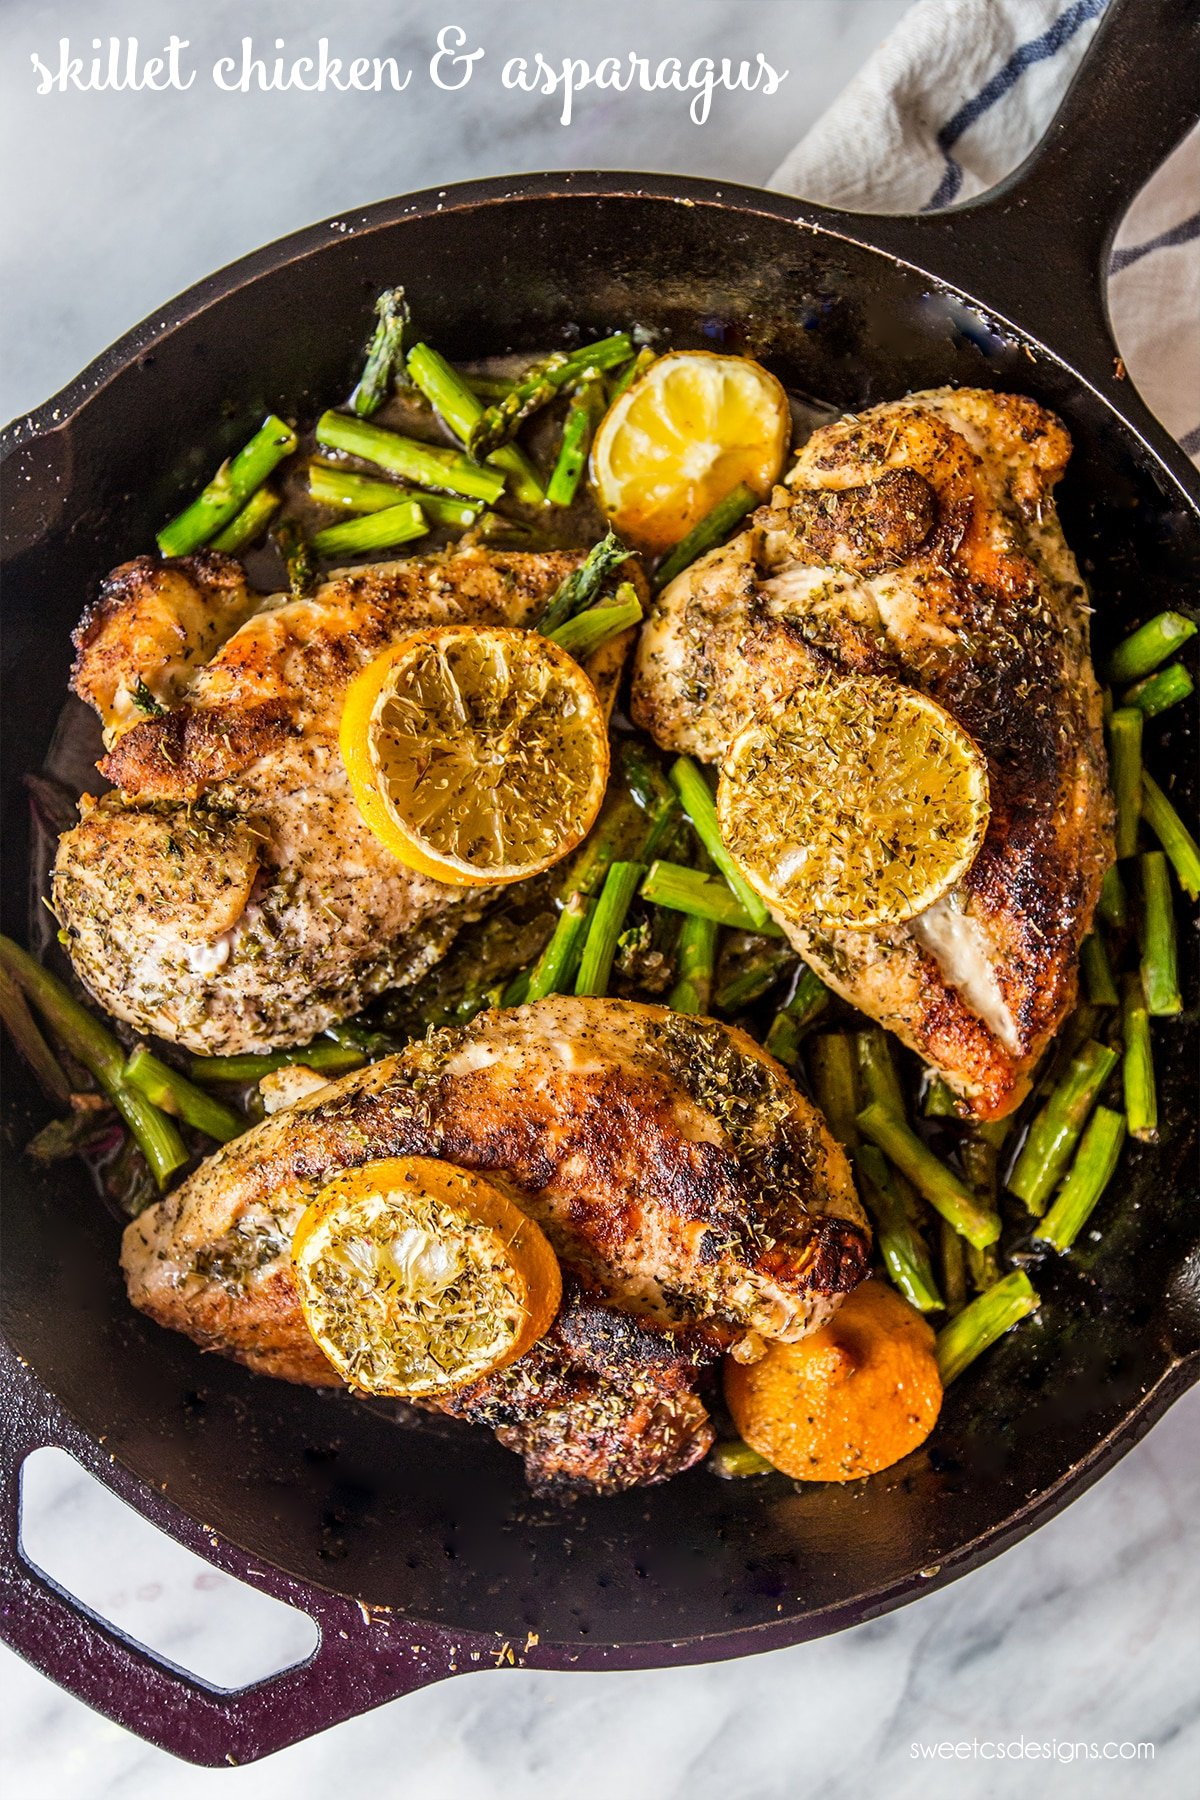 Skillet Chicken And Asparagus Delicious And Easy!